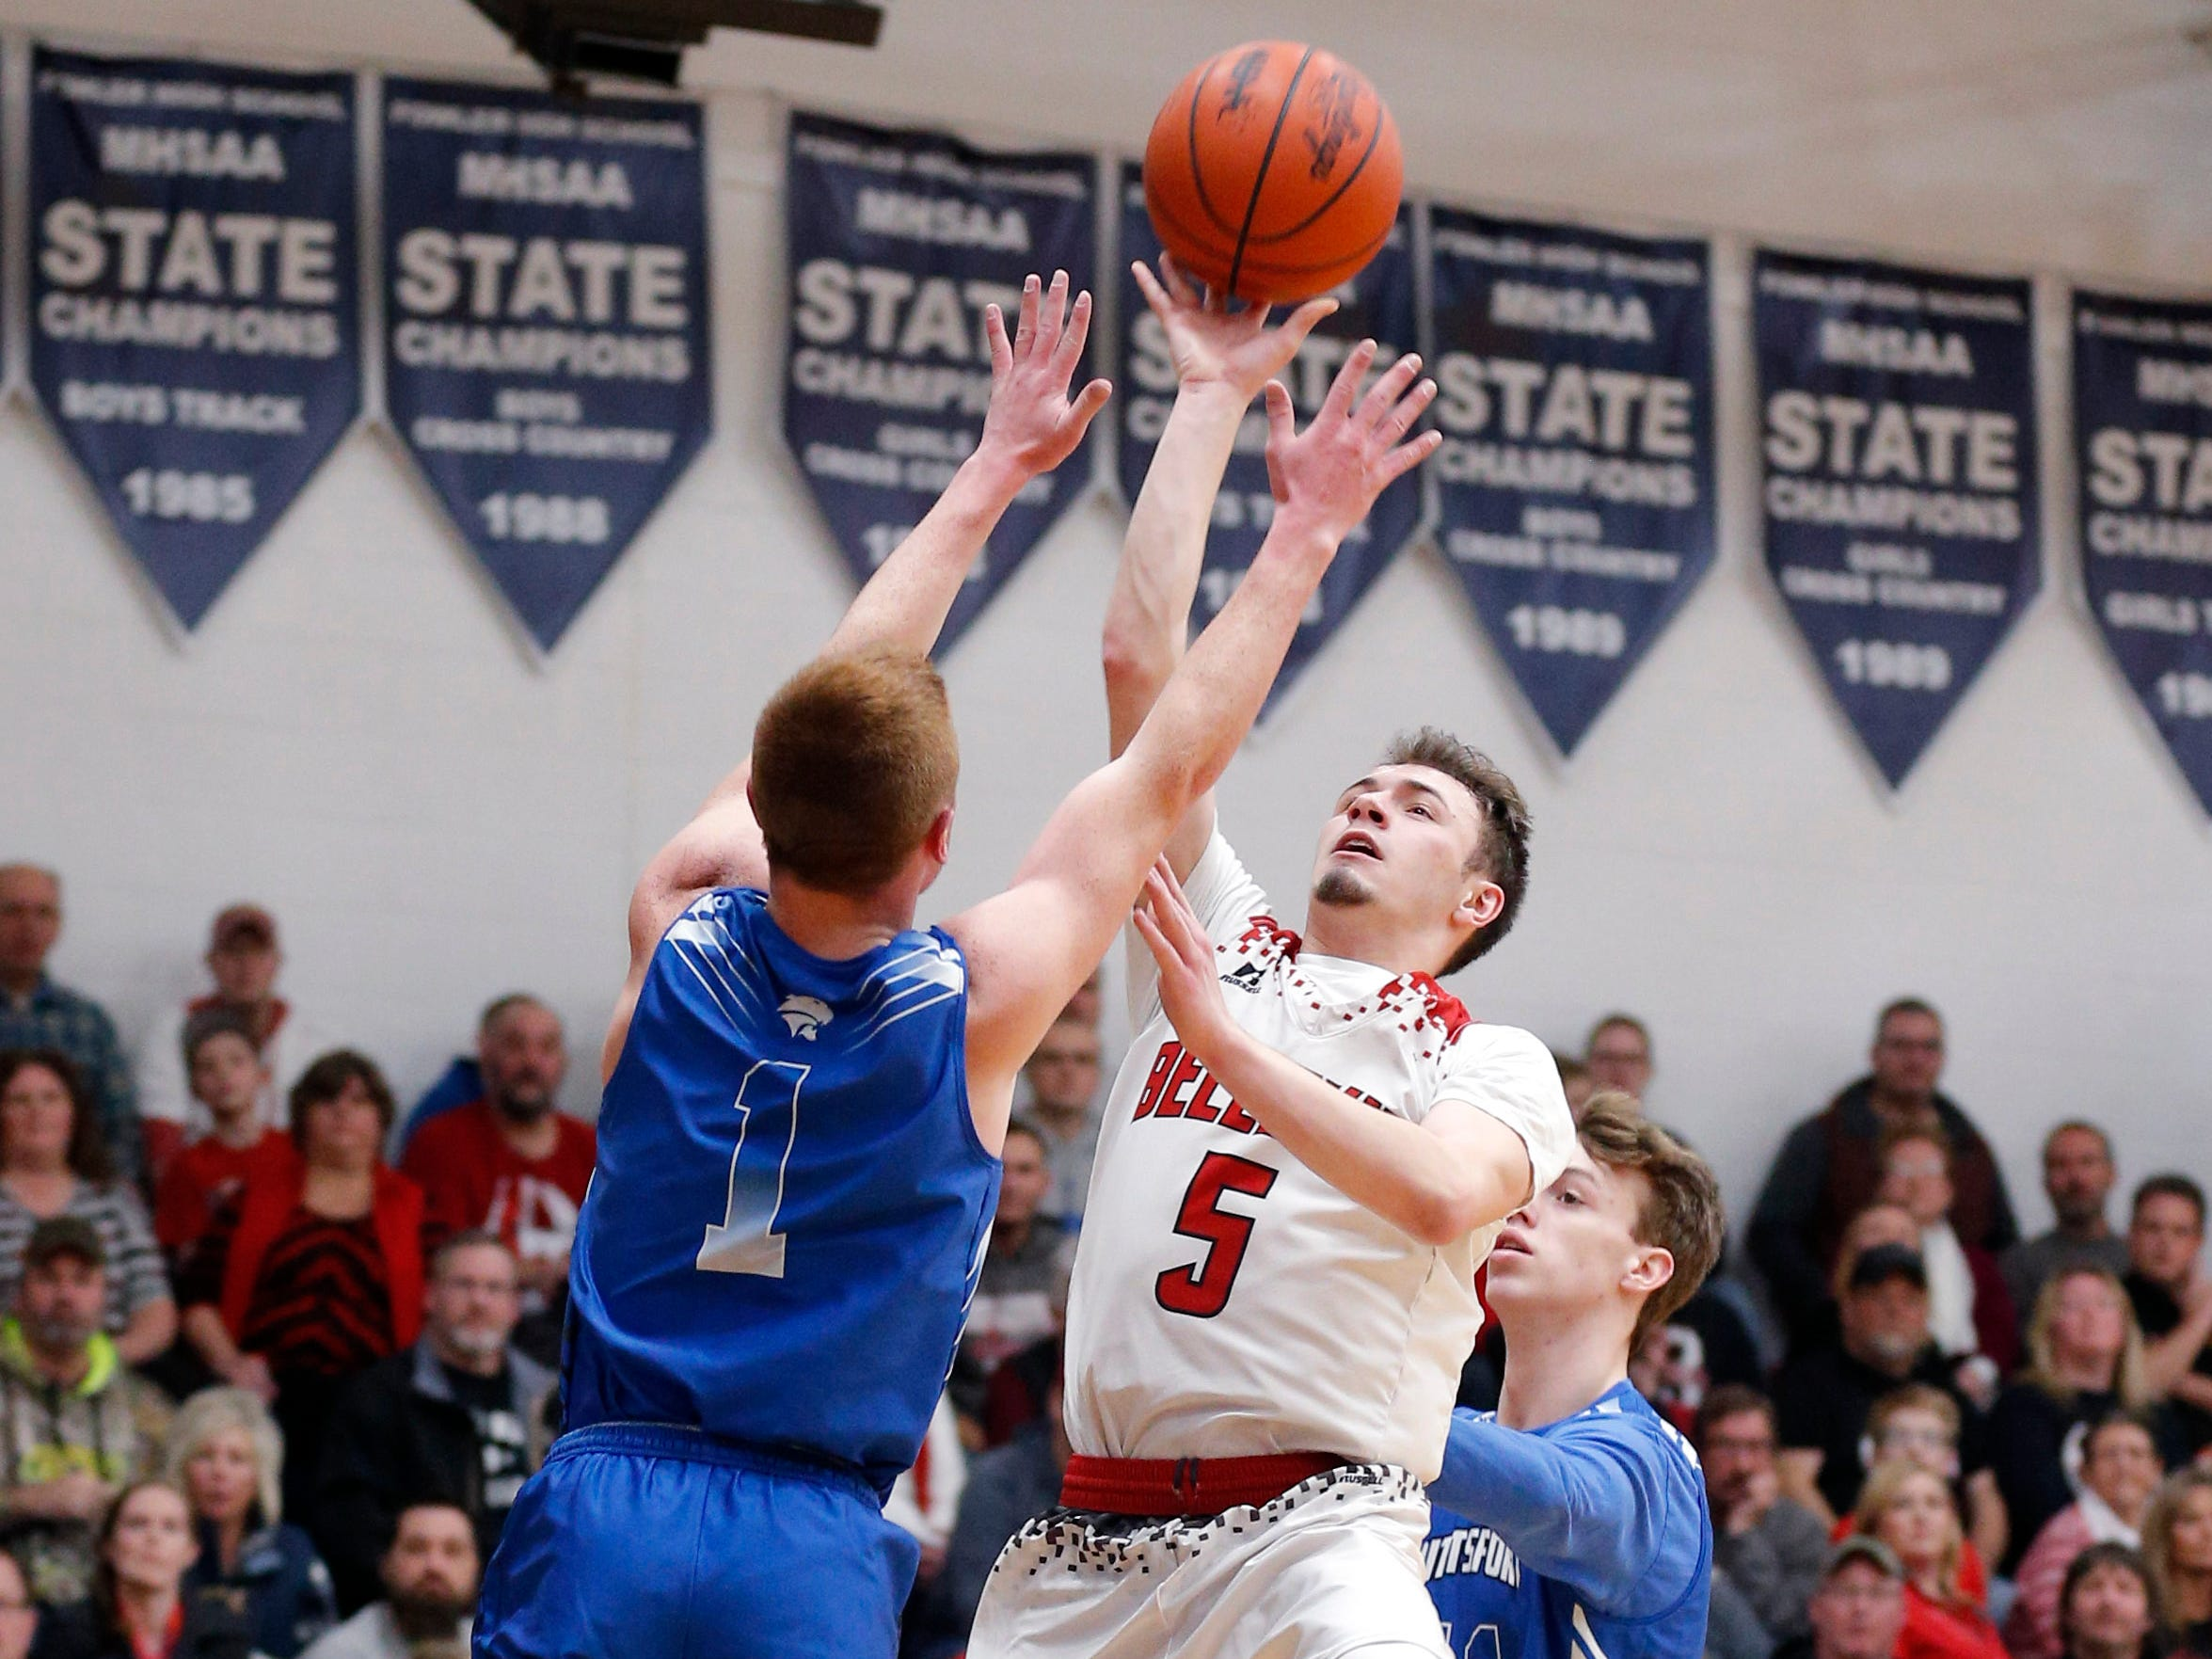 Bellevue's Wyatt Waterbury, center, goes up for a shot between Pittsford's Lucas McGraw, left, and Joshua Logan, right, in their regional final, Thursday, March 7, 2019, in Fowler, Mich. Bellevue won 42-28.